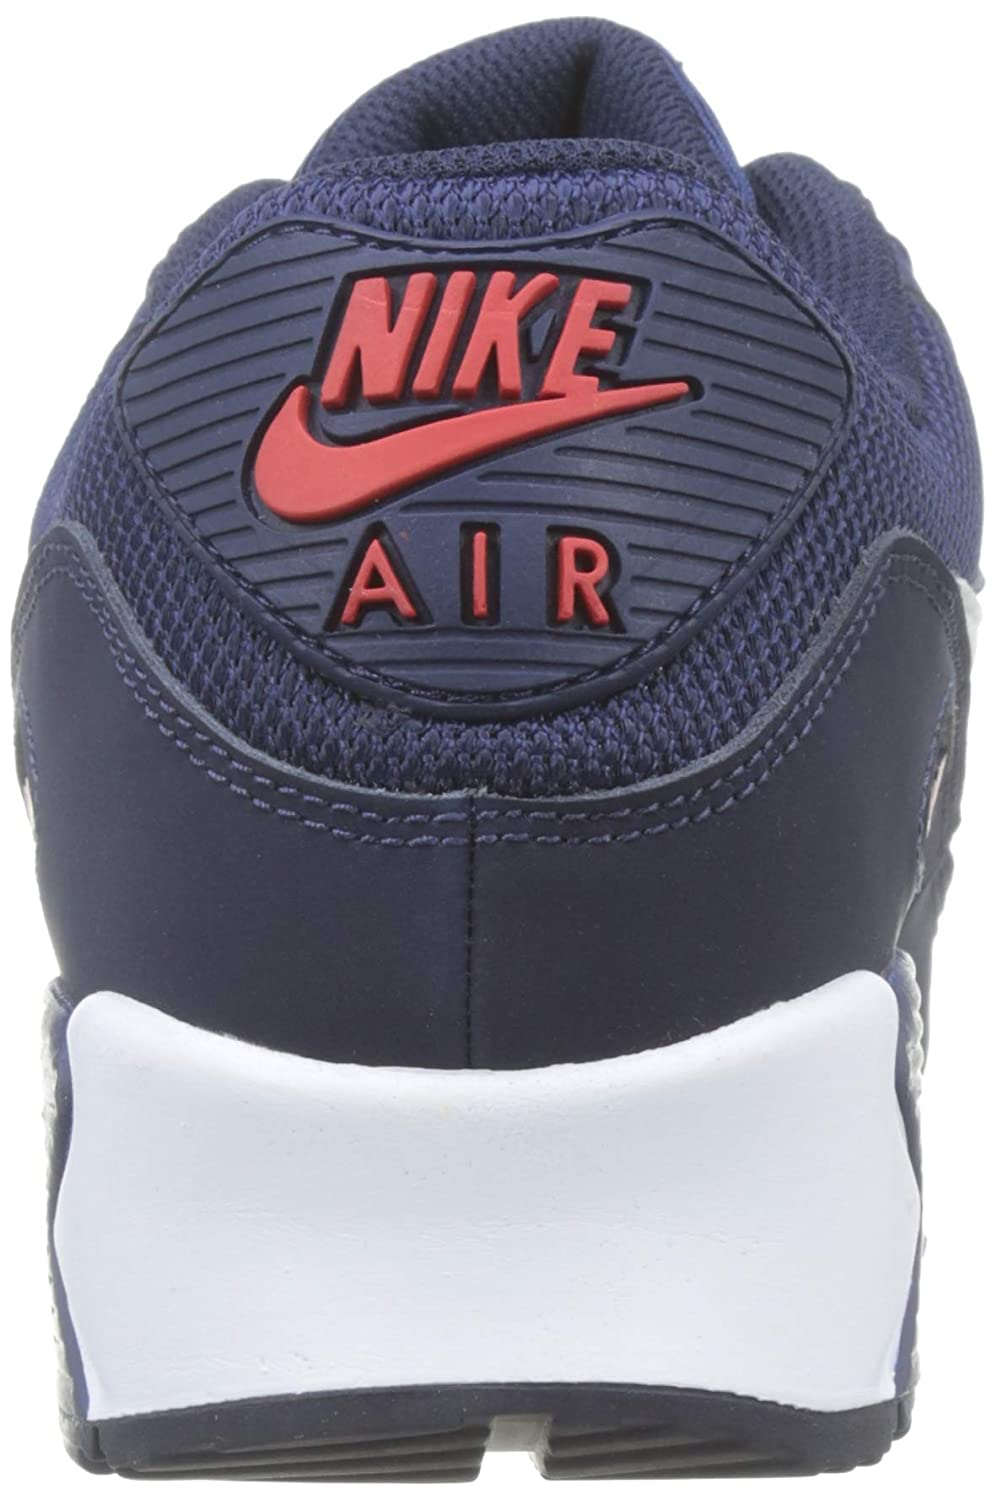 outlet store 52bca cde20 Amazon.com   Nike Men s Air Max 90 Essential Low-Top Sneakers   Road Running